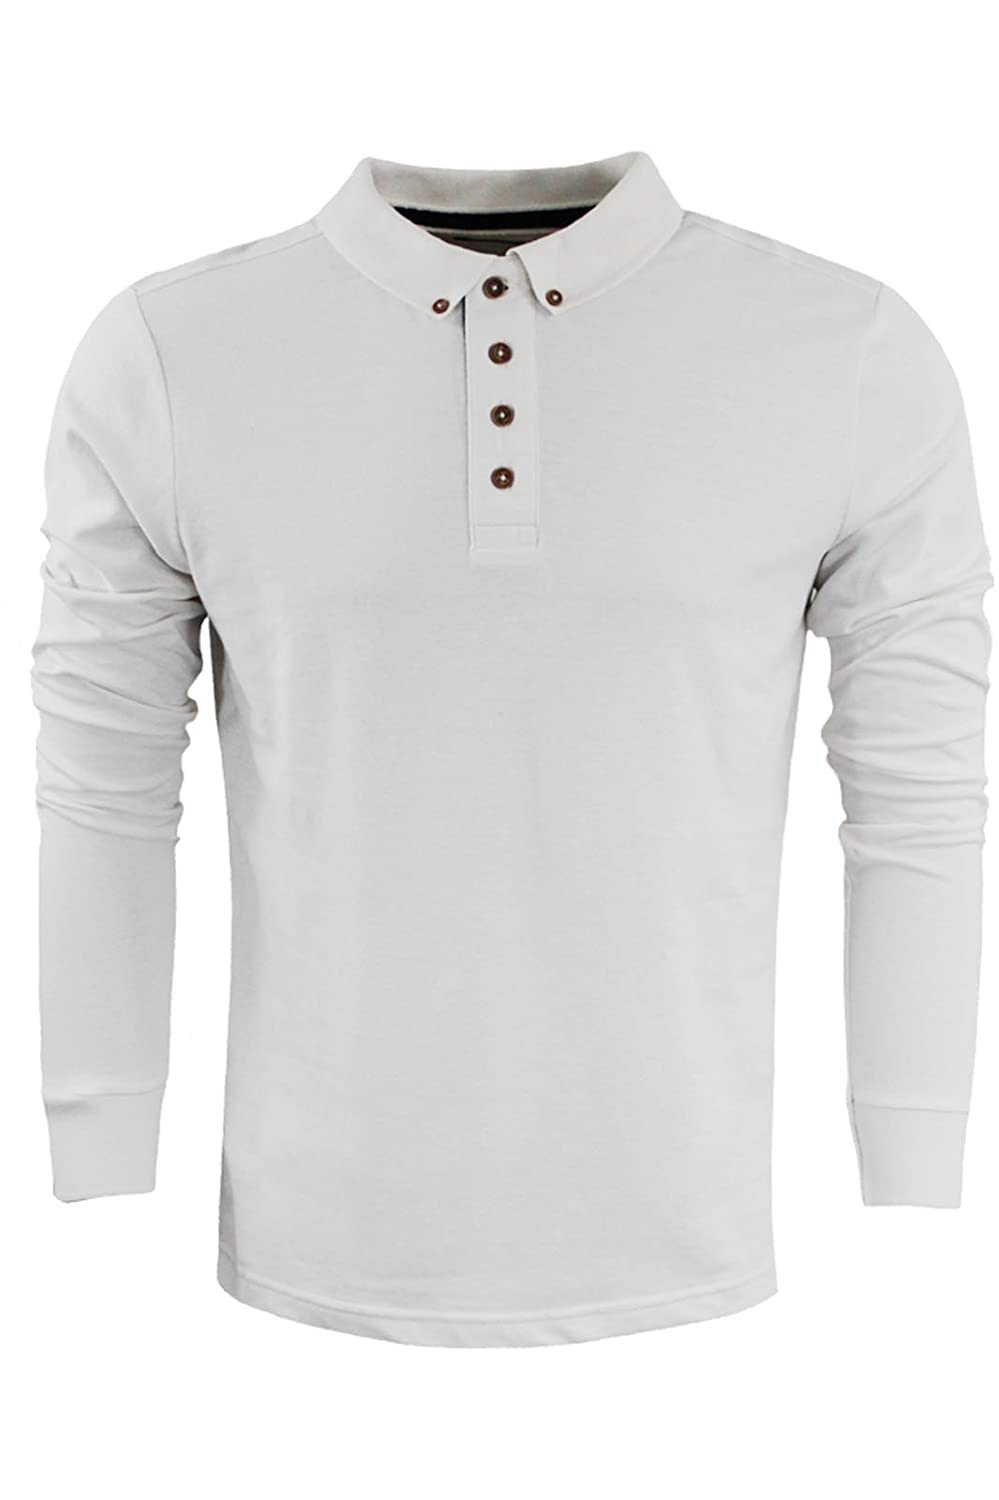 Brave Soul Men's Lincoln' Long Sleeve Cotton Collared Top New Size S-XXL